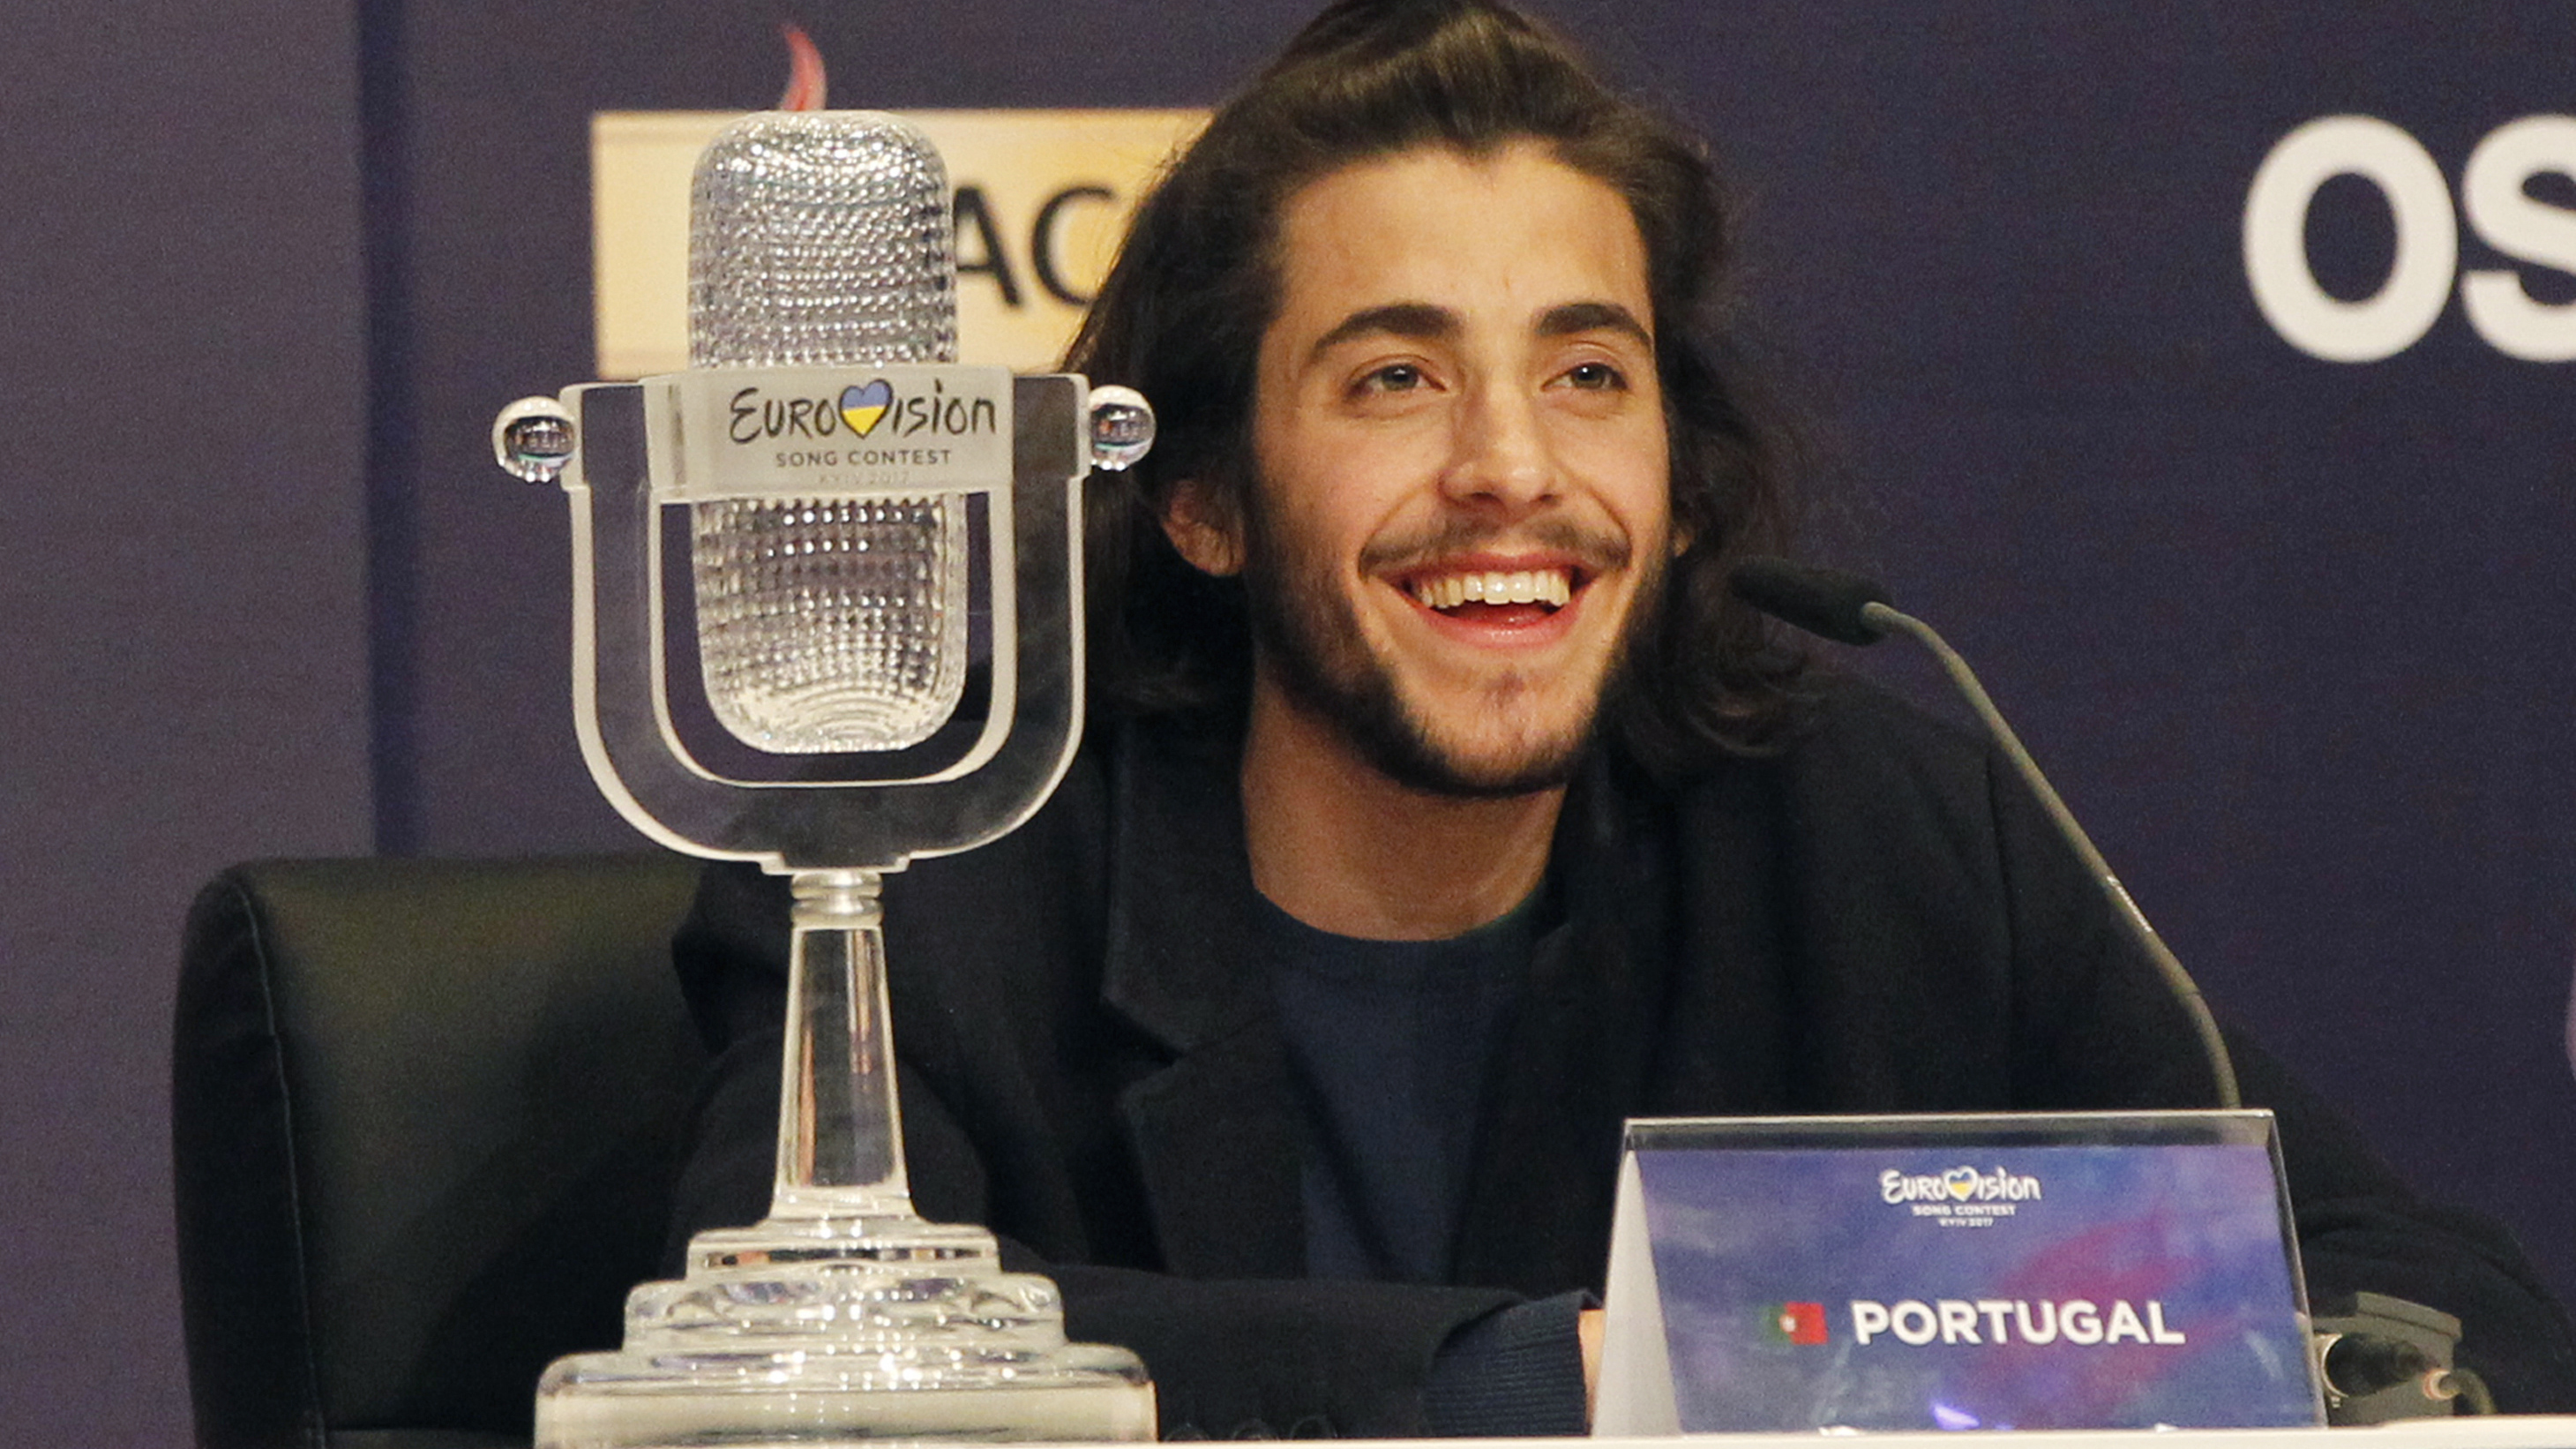 Salvador Sobral of Portugal wins 2017 Eurovision song contest in Kiev